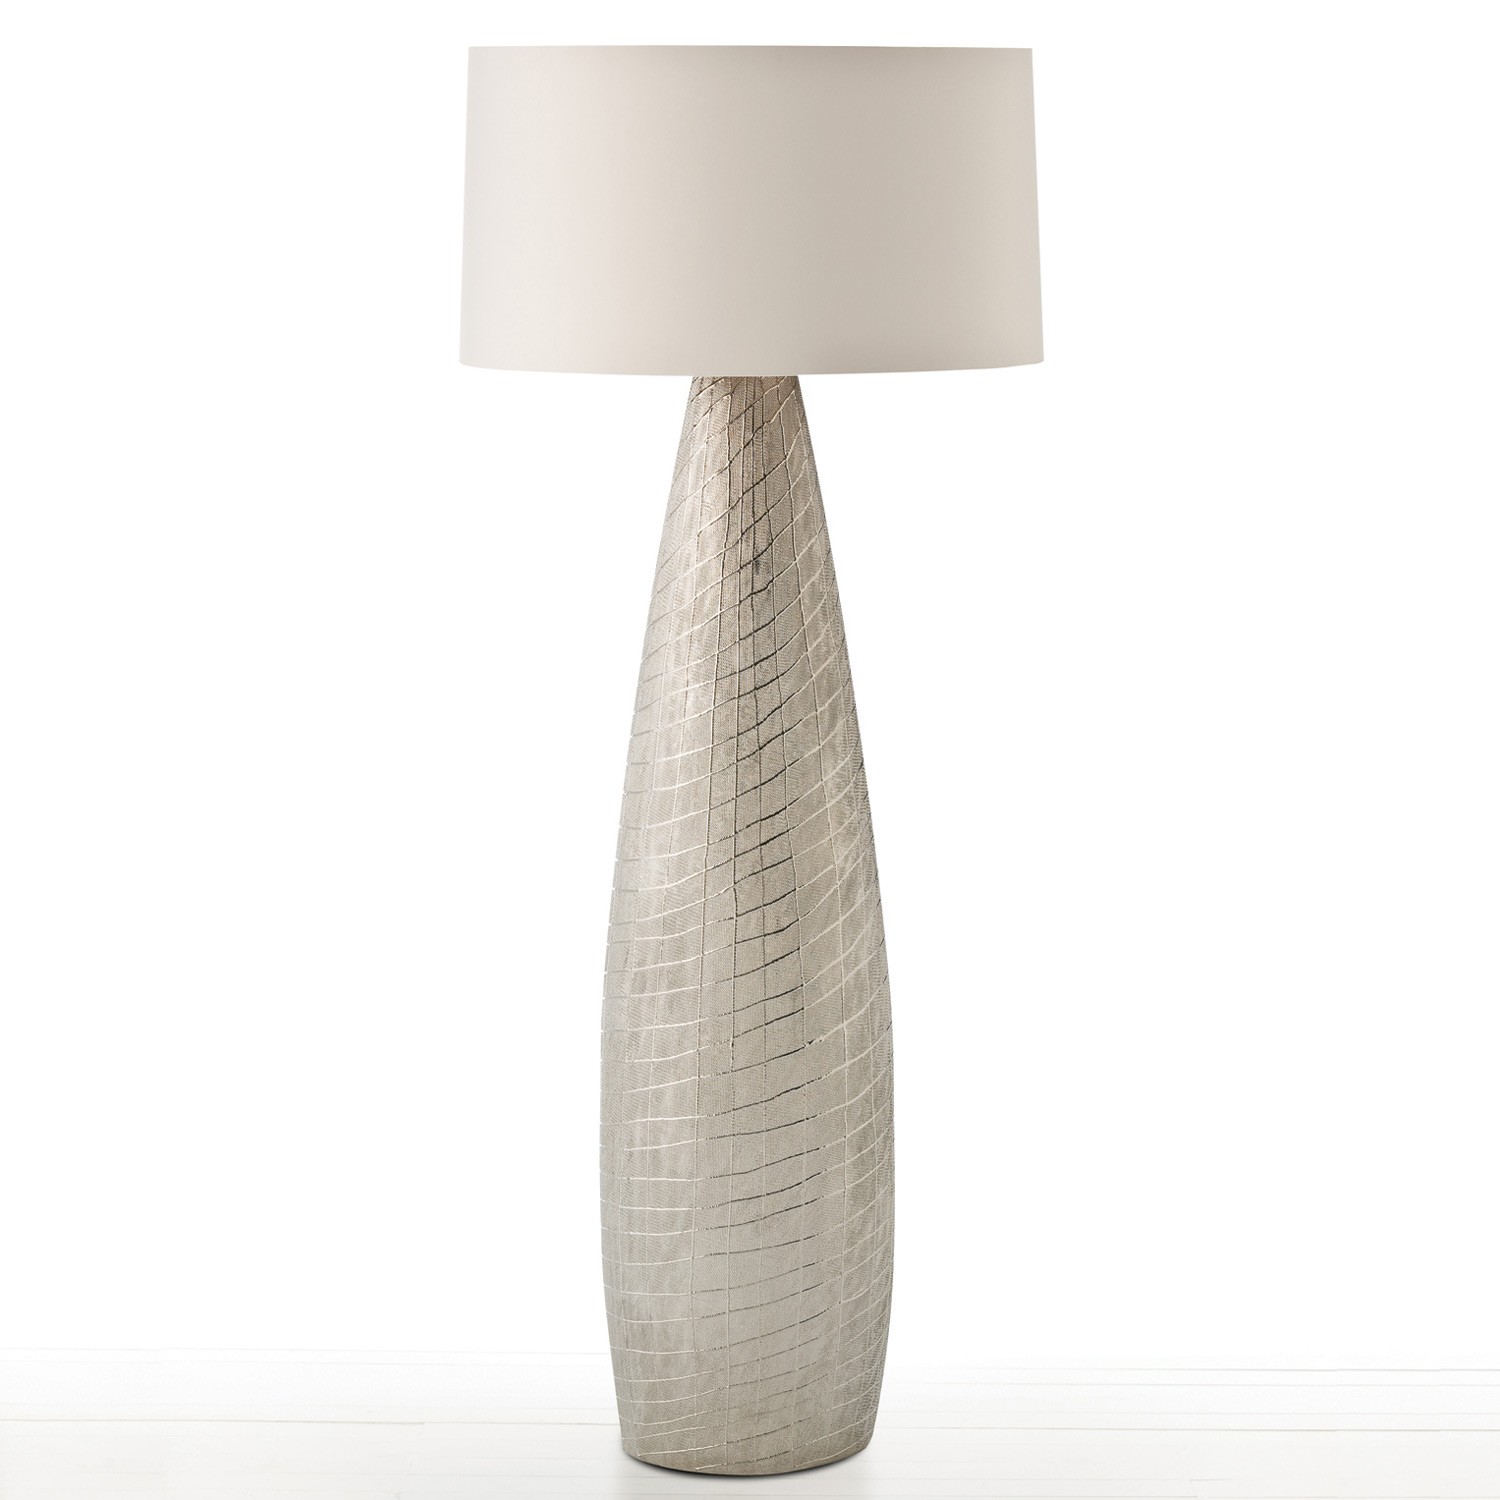 arteriors lamps photo - 2